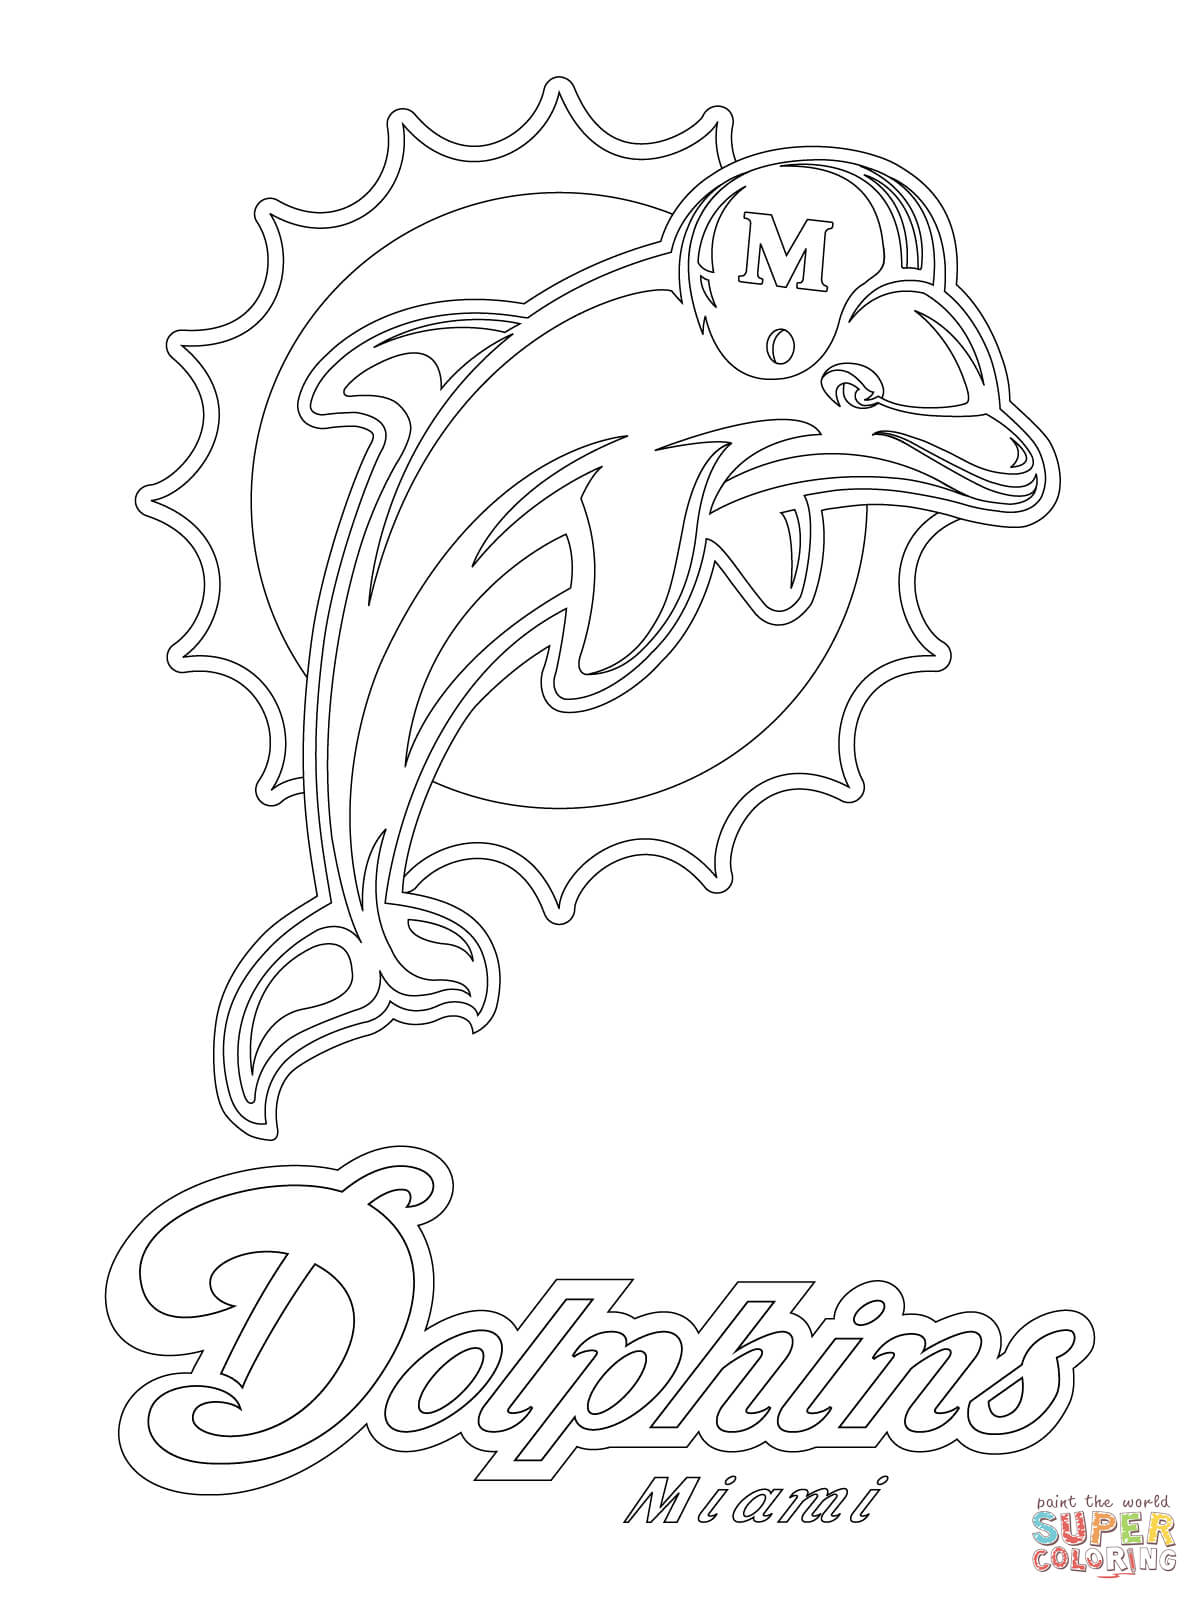 Miami Dolphins Logo Coloring Page  Free Printable Coloring Pages